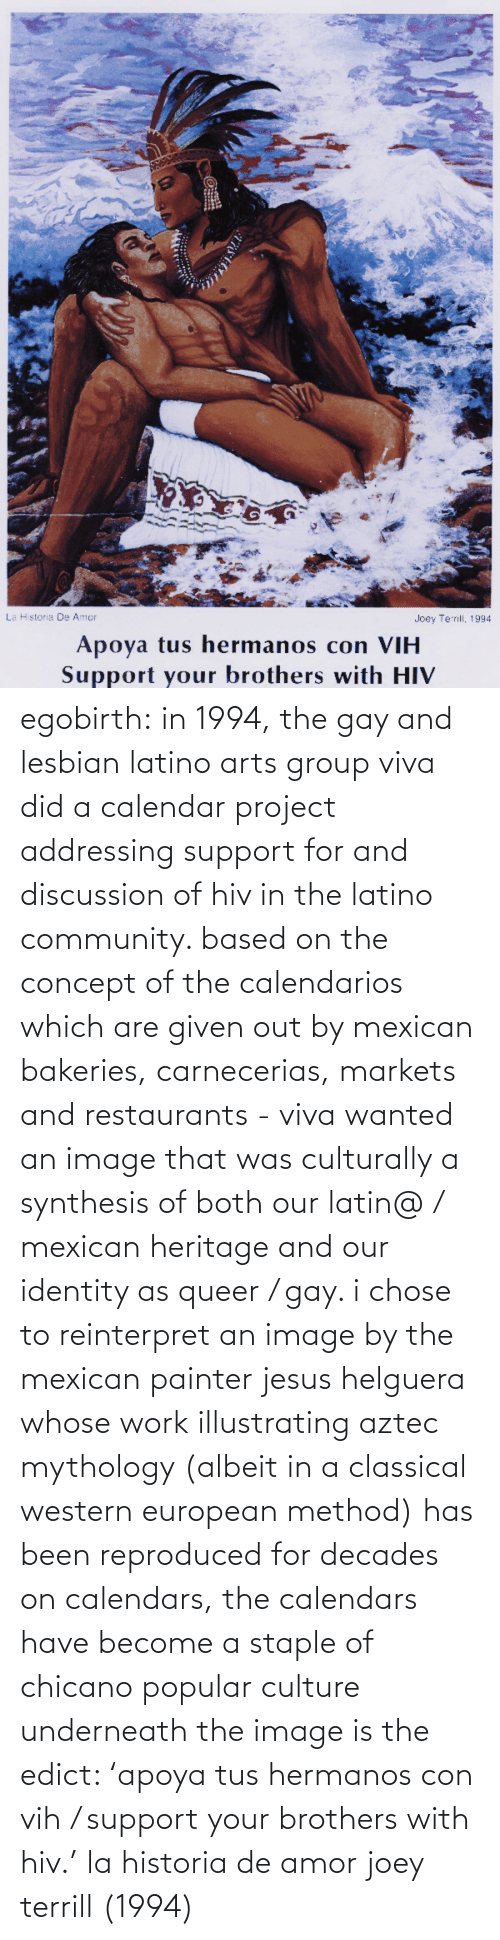 chicano: La Historia De Amor  Joey Terrill, 1994  Apoya tus hermanos con VIH  Support your brothers with HIV egobirth:  in 1994, the gay and lesbian latino arts group viva did a calendar project addressing support for and discussion of hiv in the latino community. based on the concept of the calendarios which are given out by mexican bakeries, carnecerias, markets and restaurants - viva wanted an image that was culturally a synthesis of both our latin@ / mexican heritage and our identity as queer / gay. i chose to reinterpret an image by the mexican painter jesus helguera whose work illustrating aztec mythology (albeit in a classical western european method) has been reproduced for decades on calendars, the calendars have become a staple of chicano popular culture   underneath the image is the edict: 'apoya tus hermanos con vih / support your brothers with hiv.'    la historia de amor joey terrill (1994)